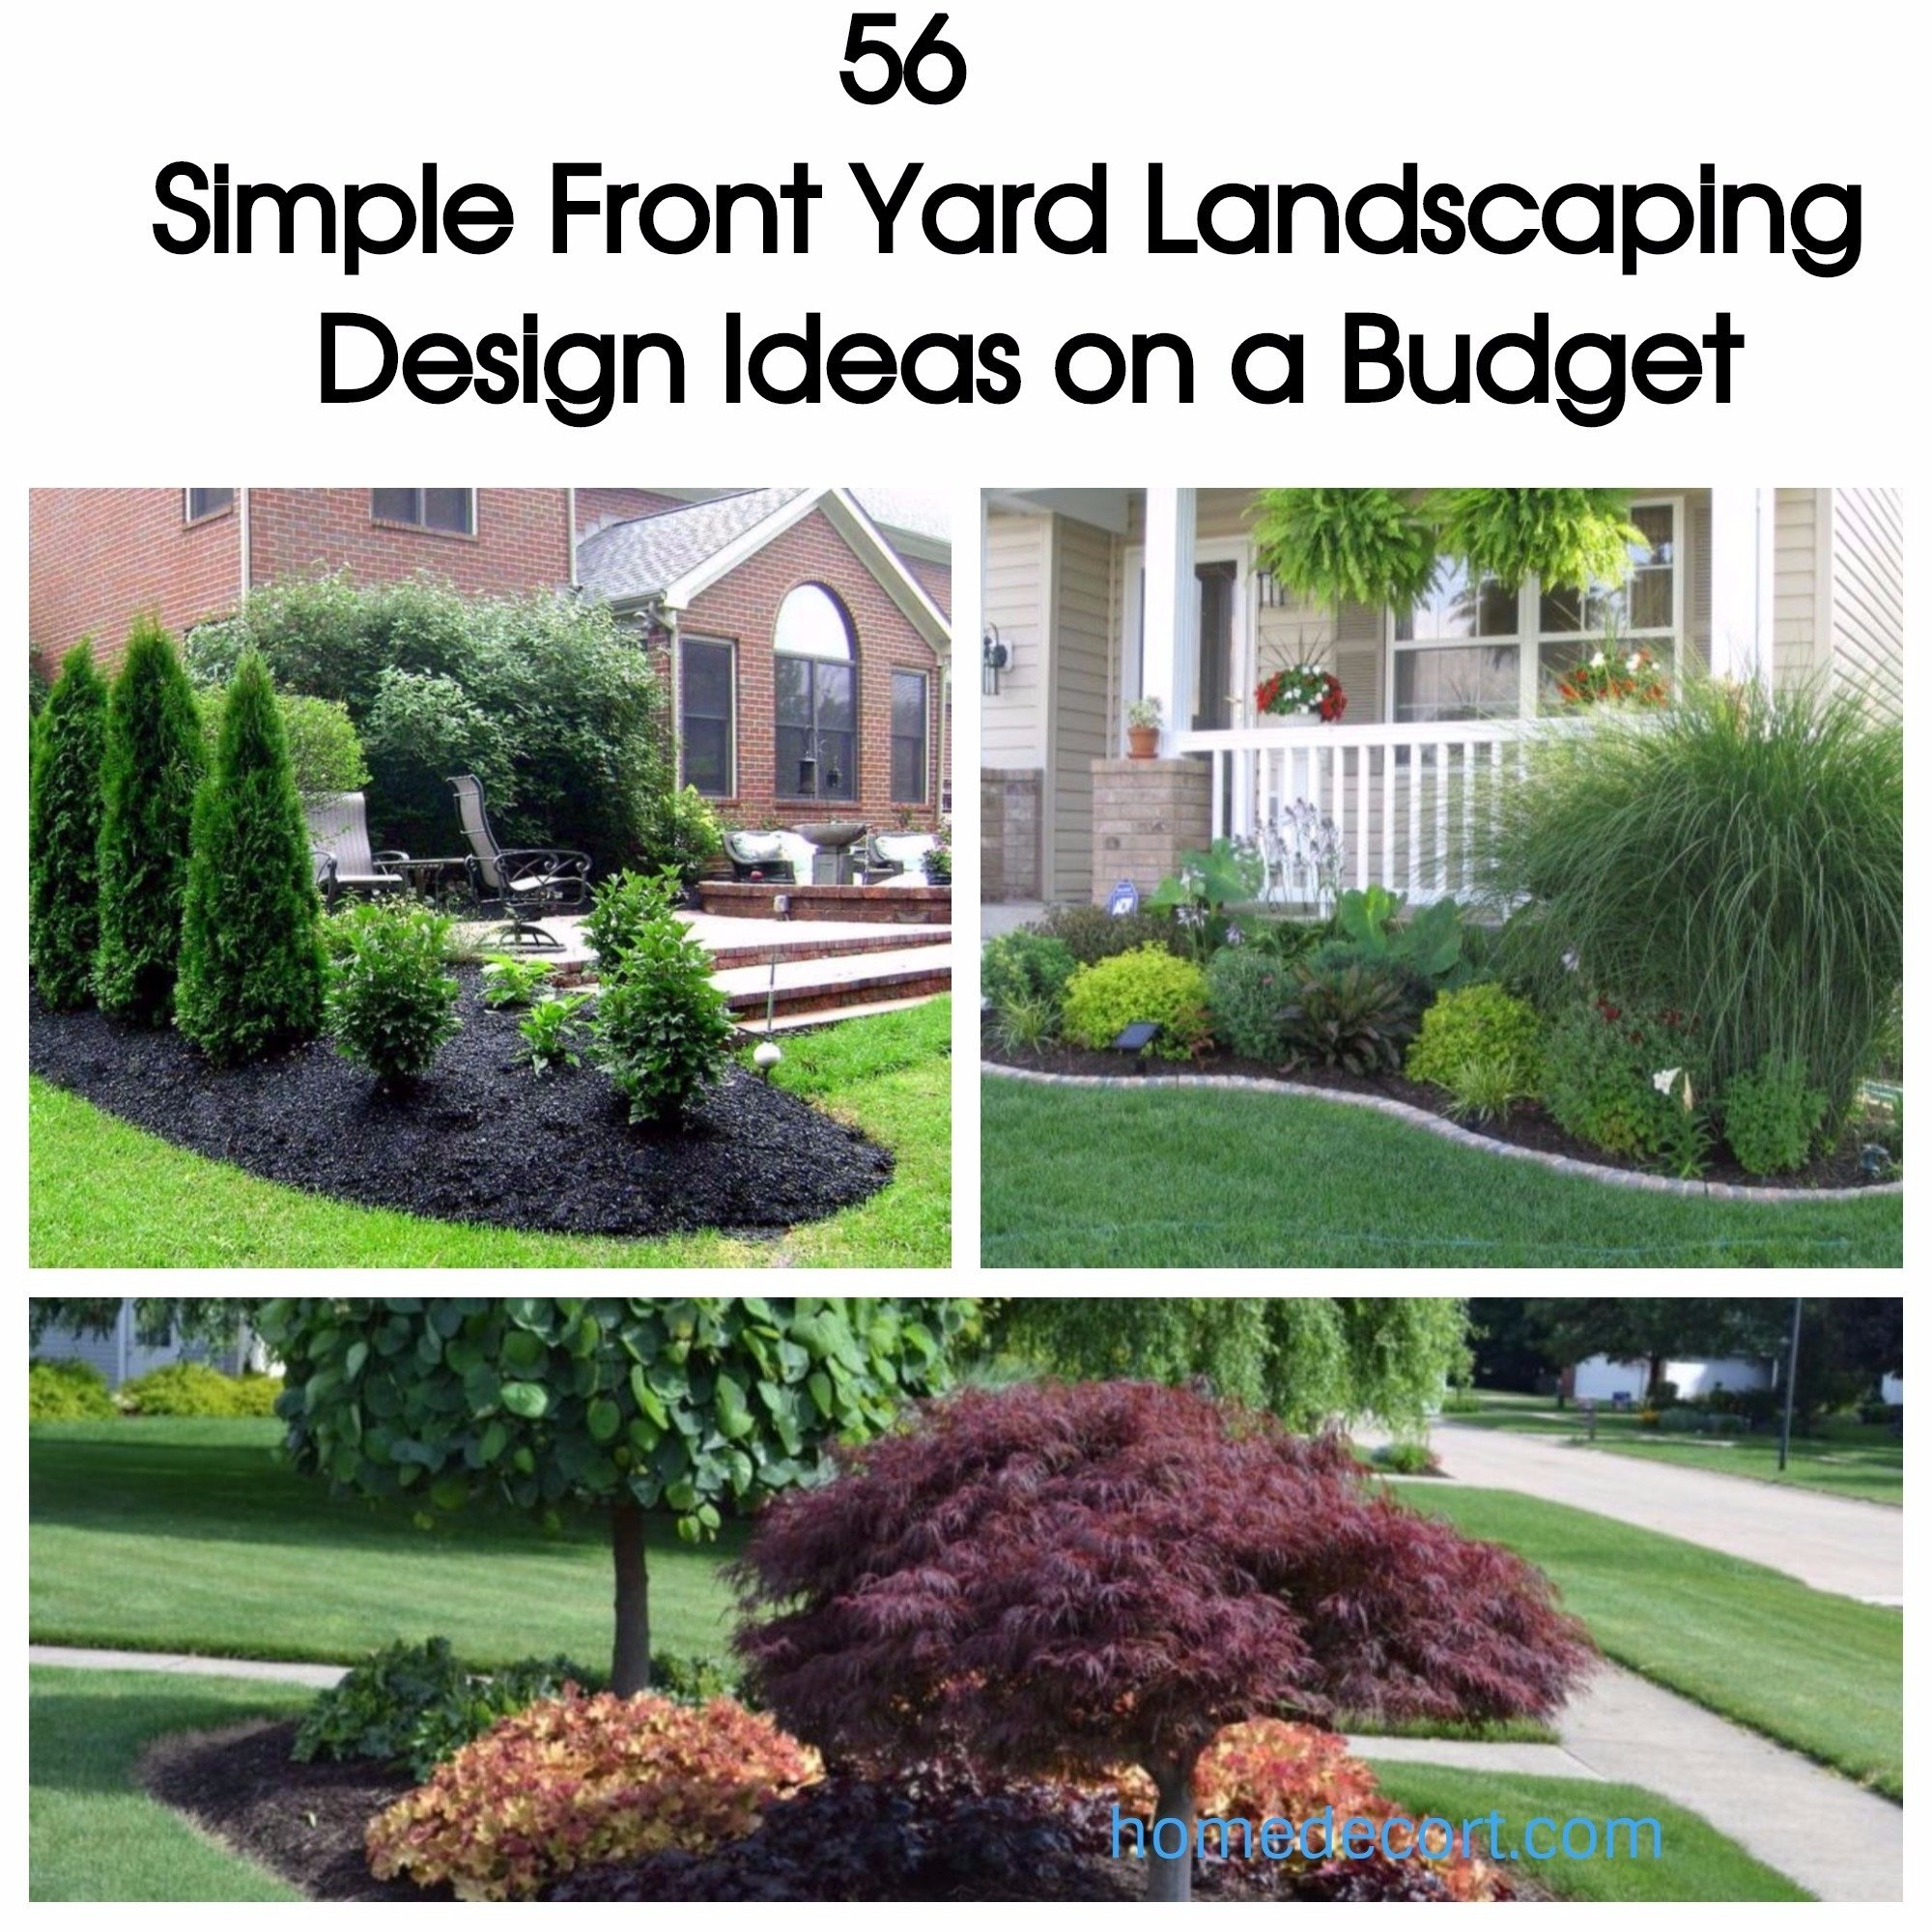 10 Stylish Simple Front Yard Landscaping Ideas On A Budget 56 simple front yard landscaping design ideas on a budget homedecort